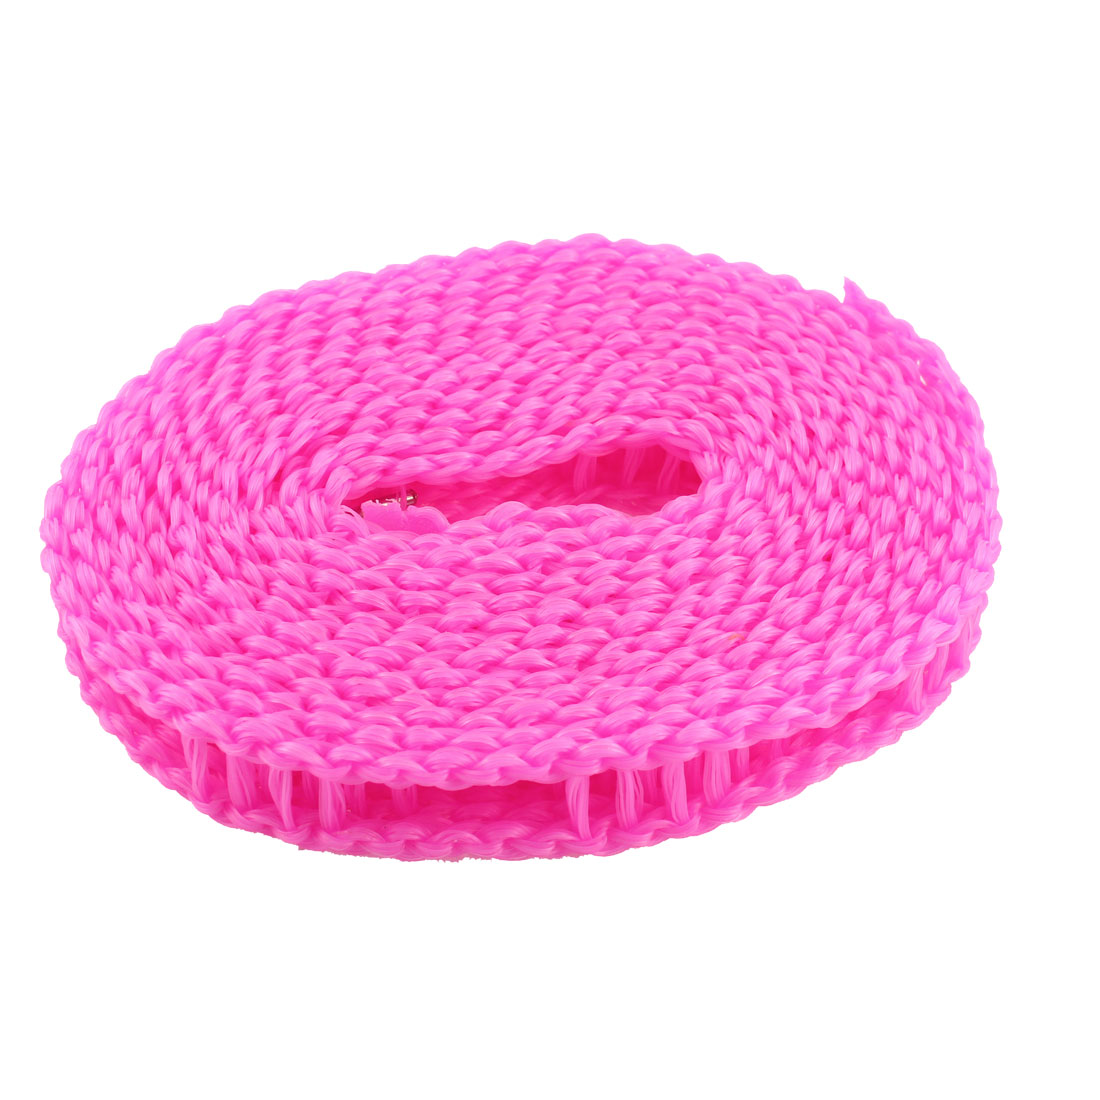 Home Plastic Stockade Style Metal Hook Detail Barrier Clothesline Pink